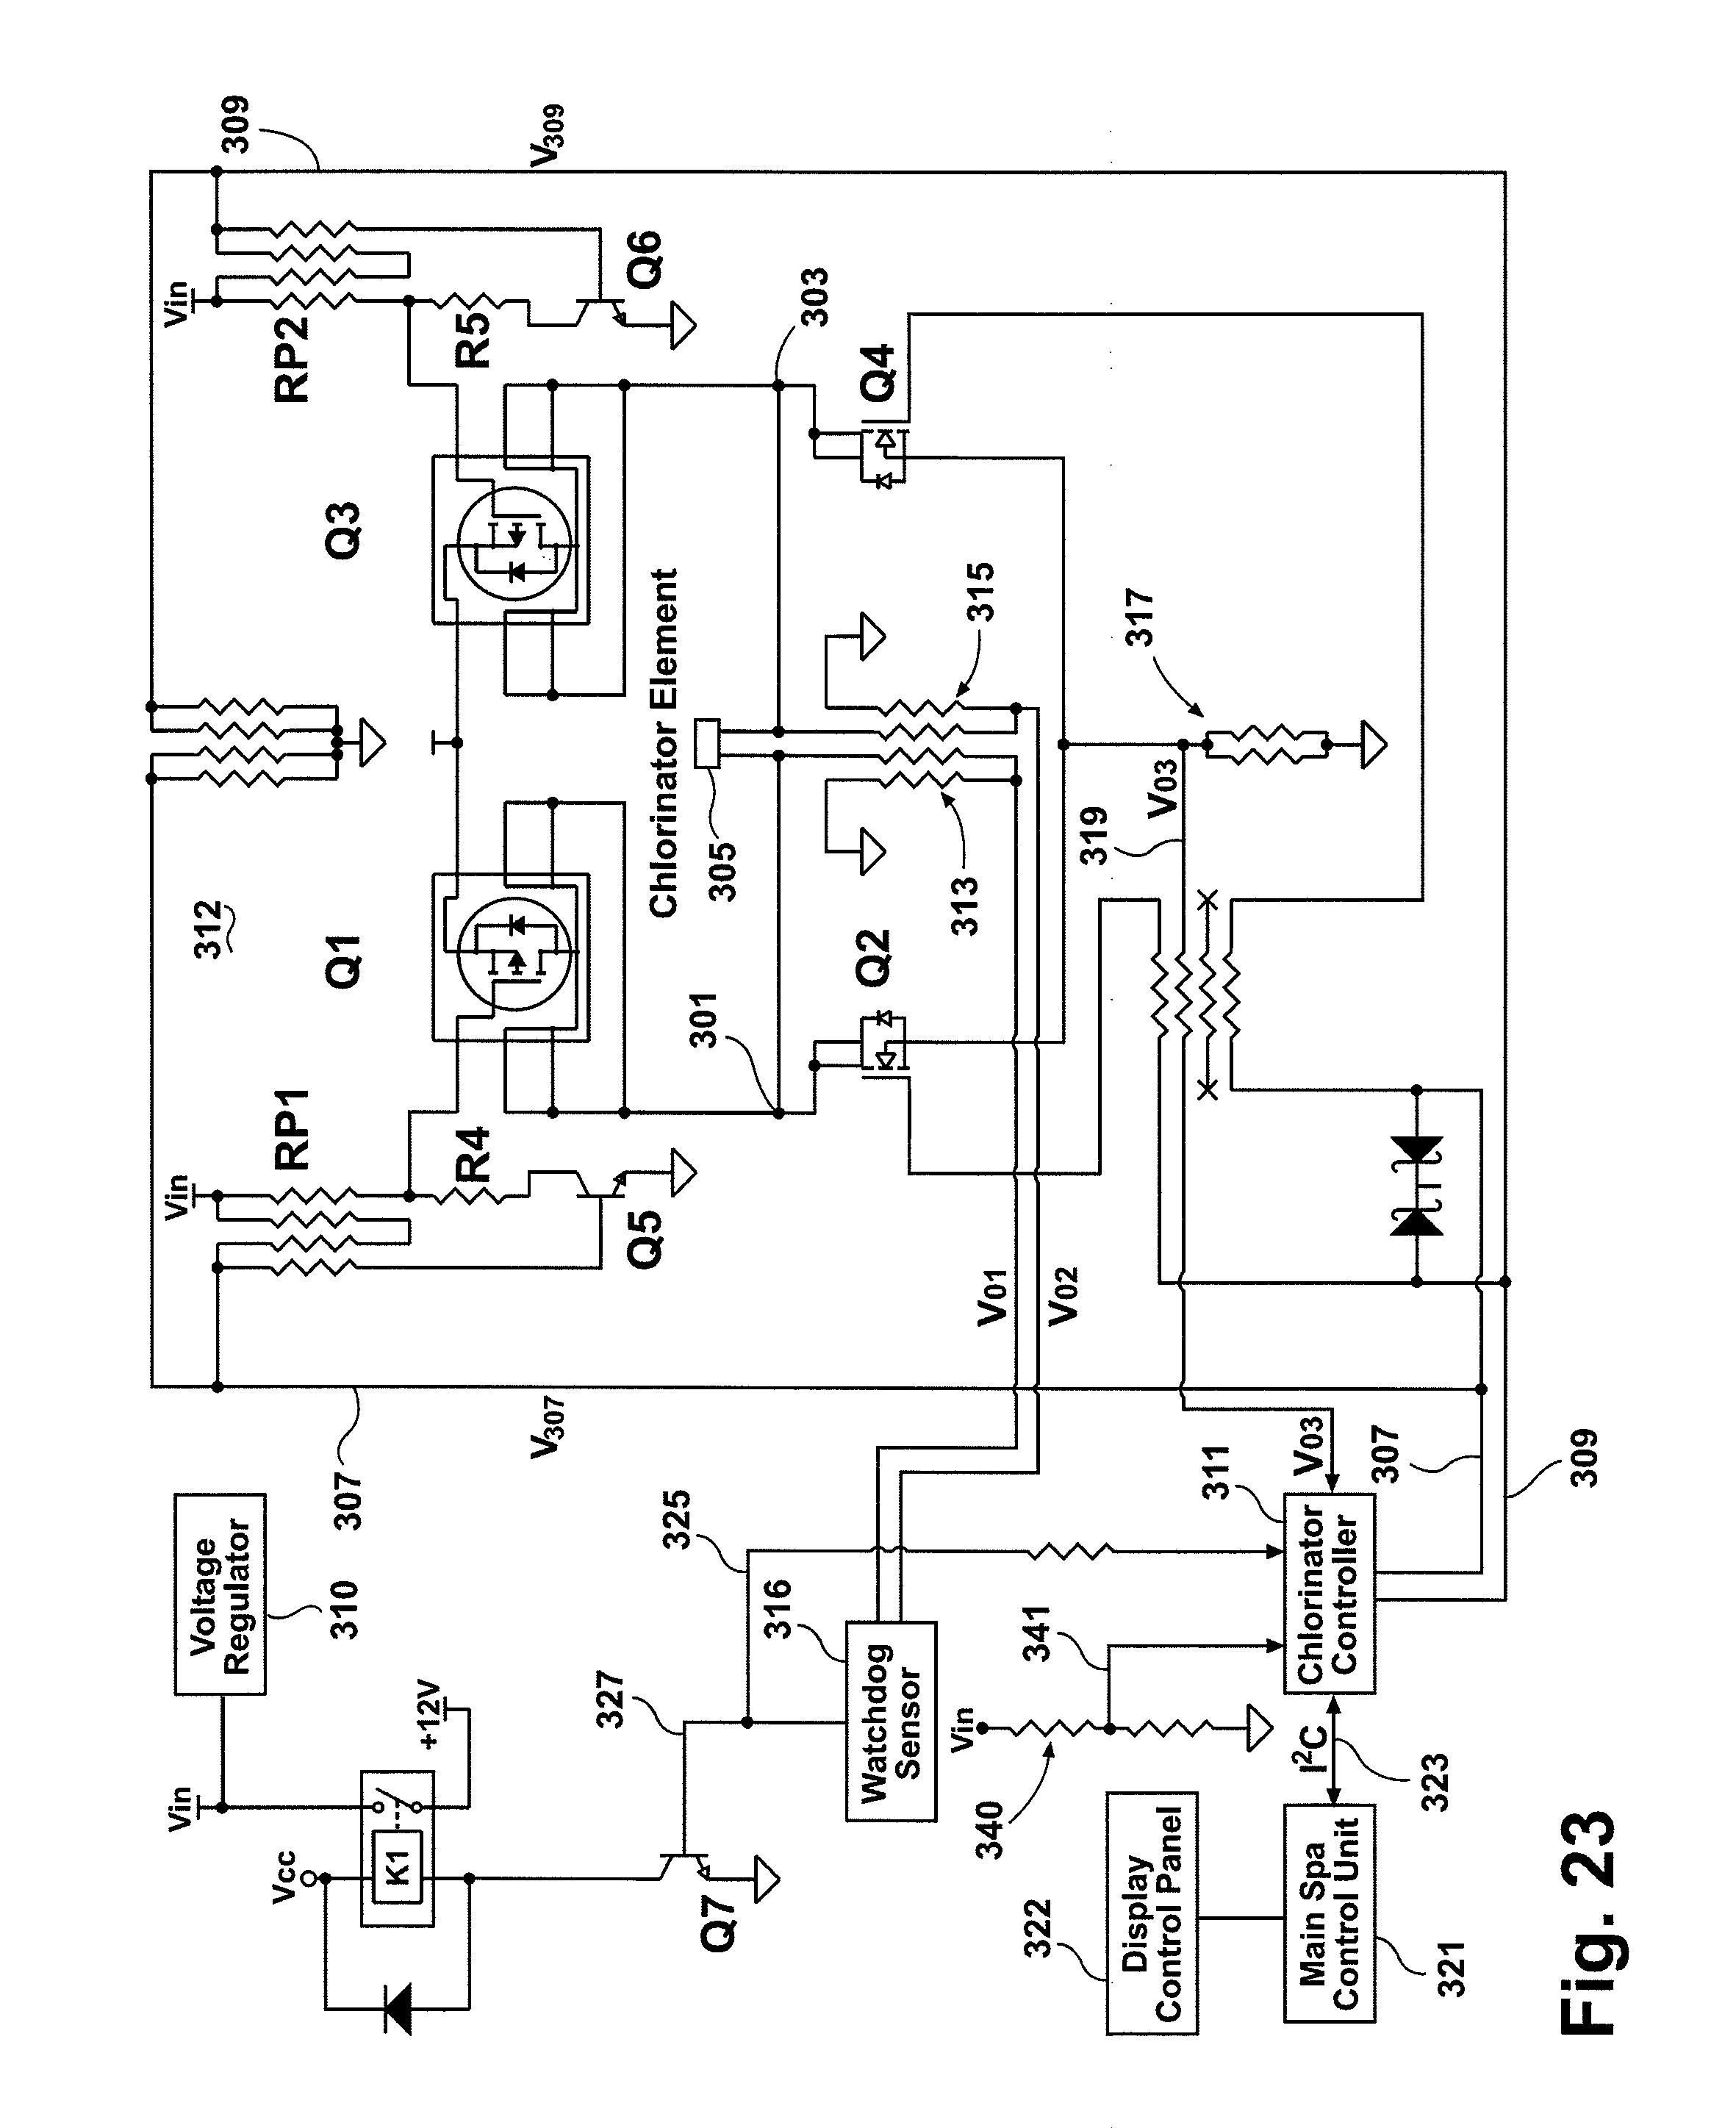 Db25 1205 Dm860a Wiring Diagram To | Wiring Liry Db Diagram Wiring on